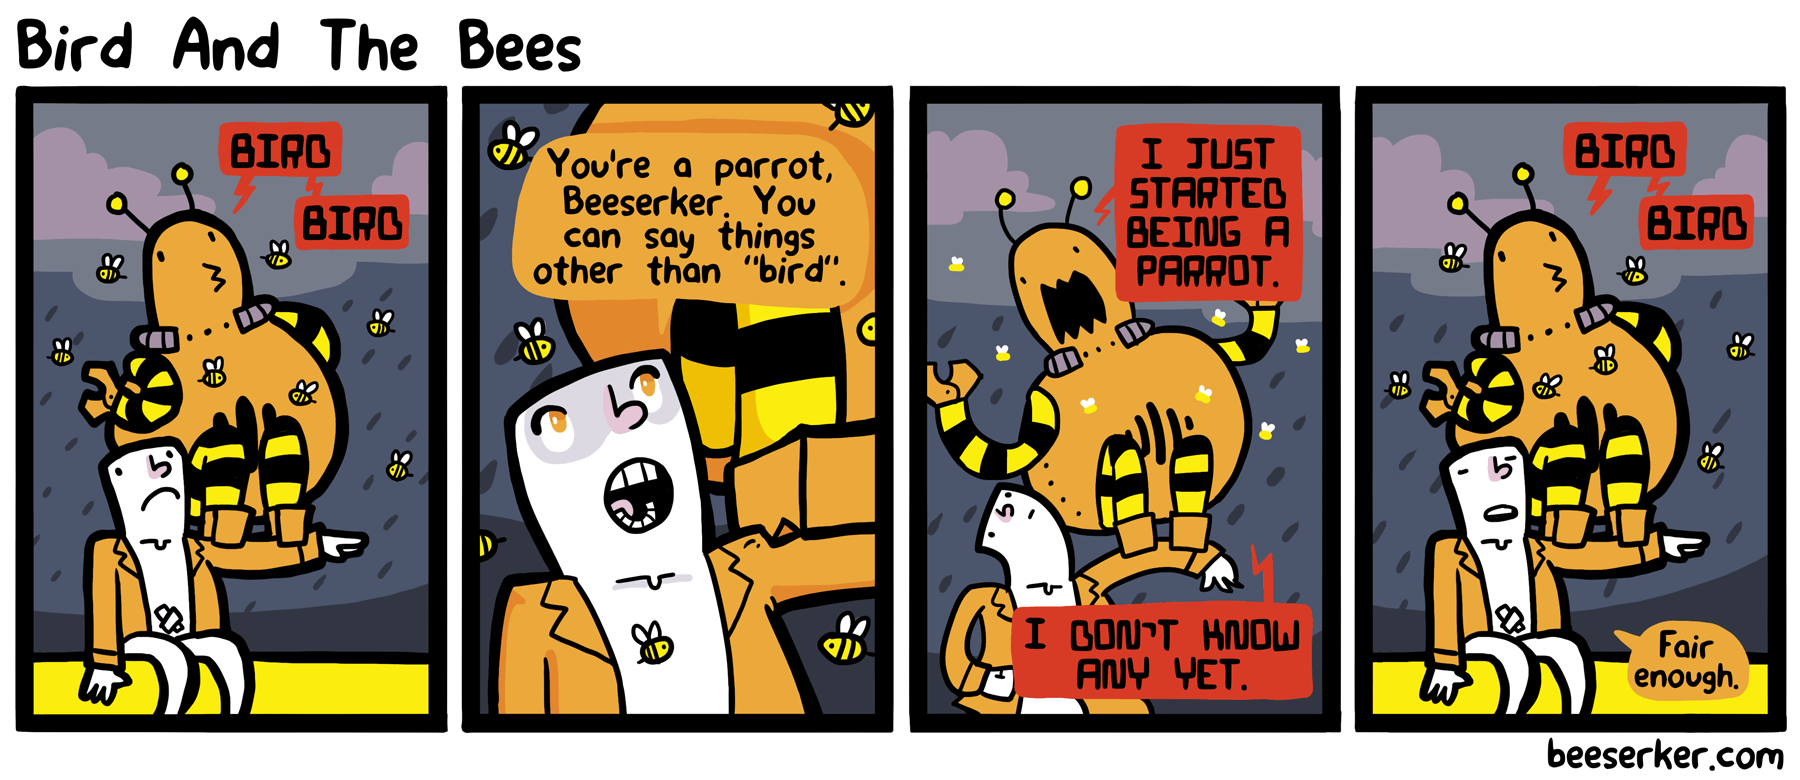 Bird and the Bees